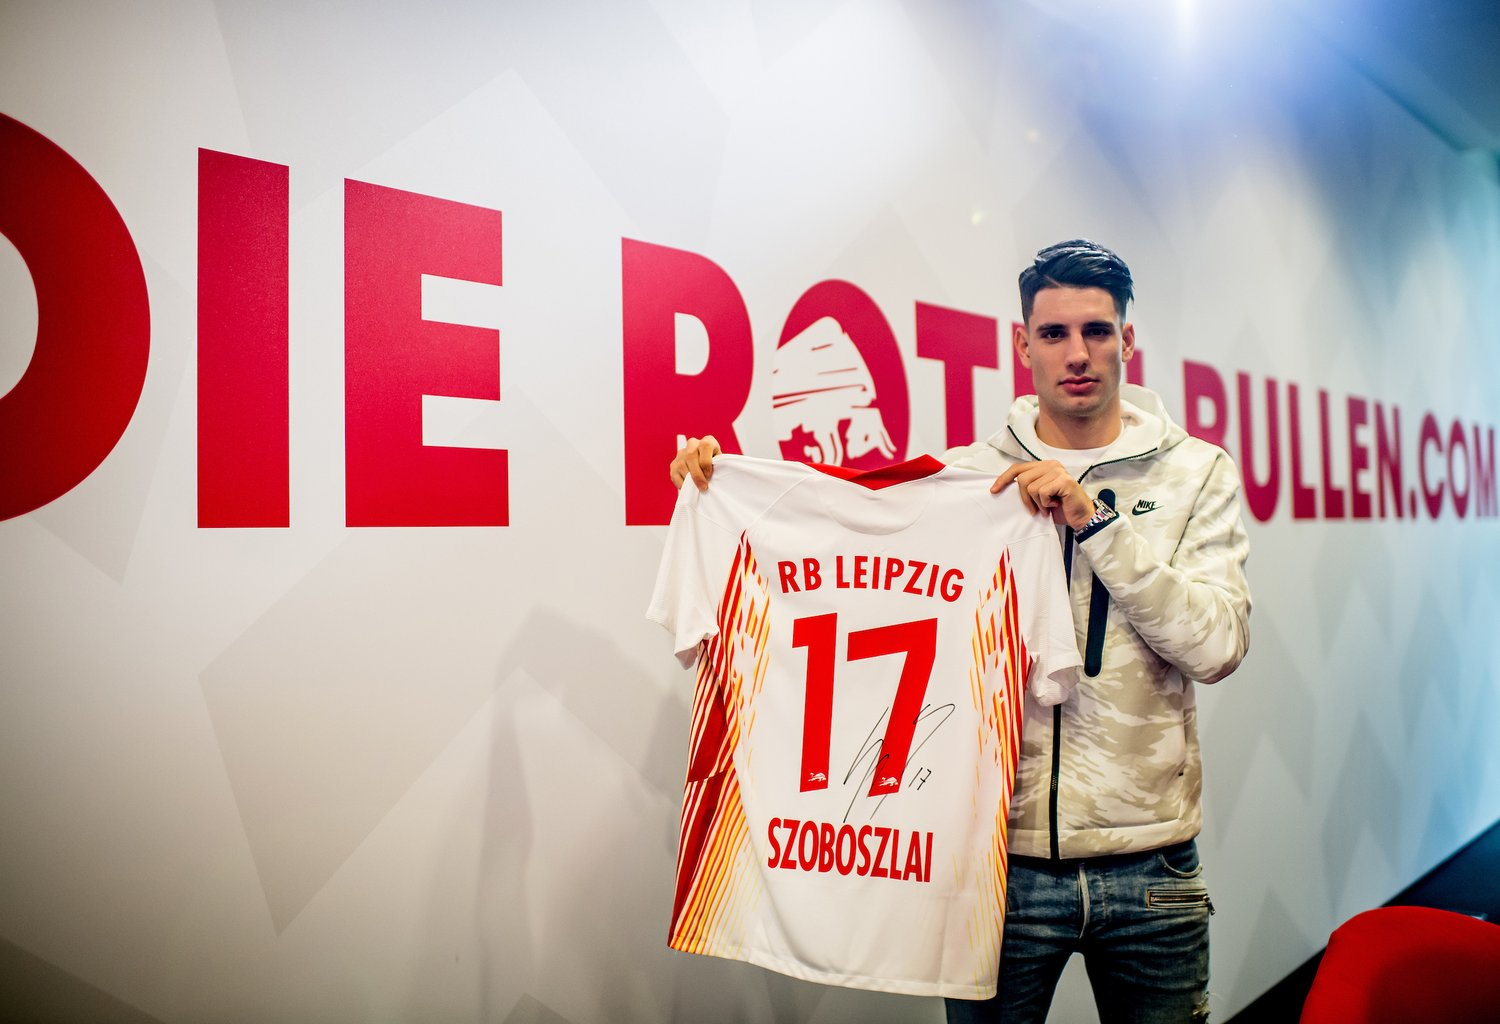 A big step up for the player and the club: Szoboszlai to become Leipzig's first superstar?